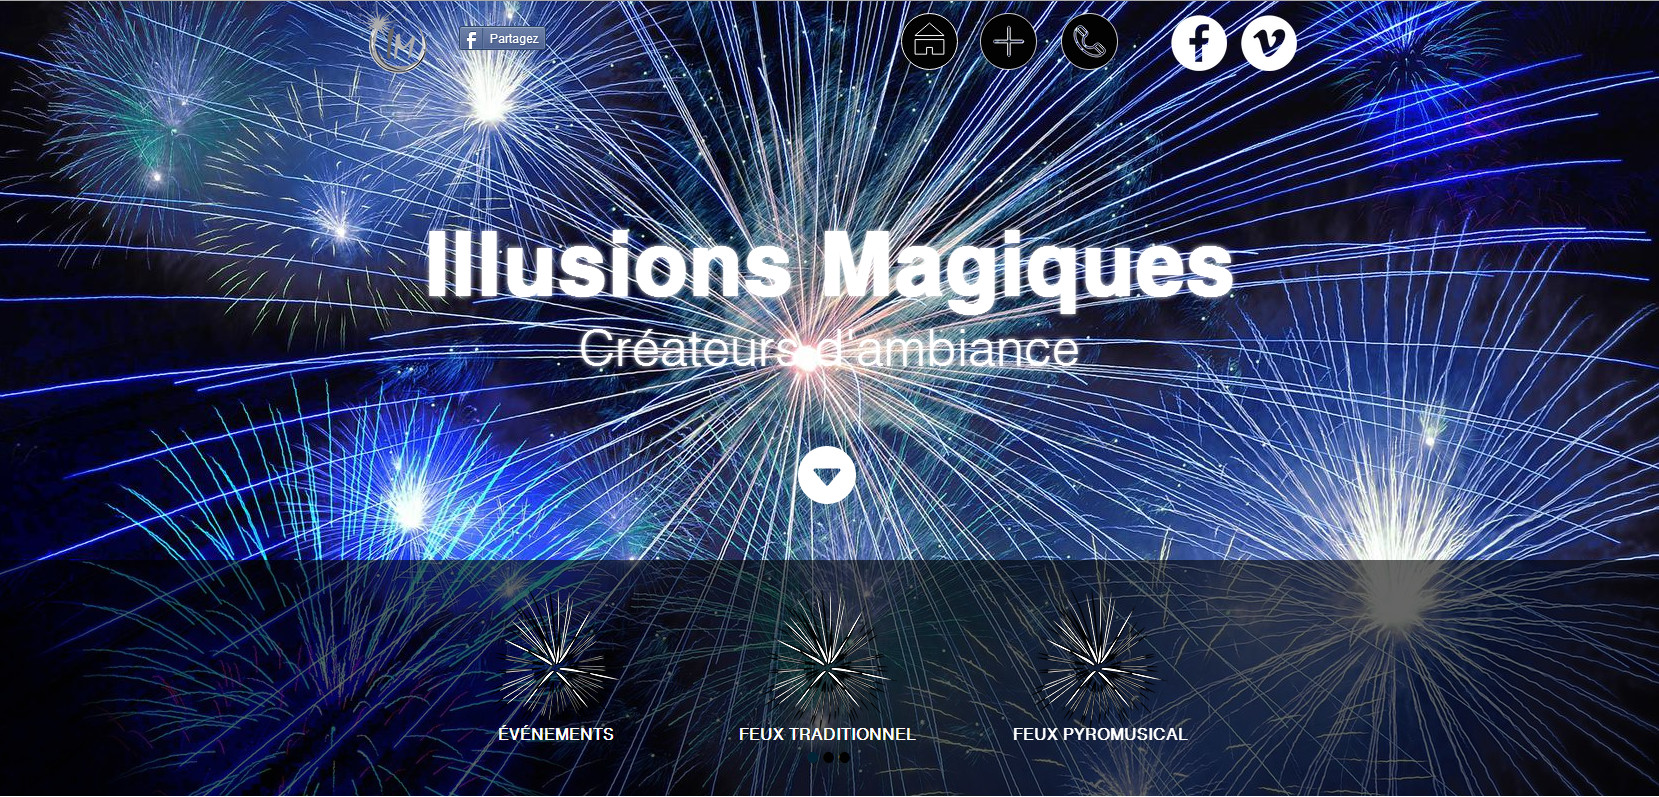 Illusions Magiques Pyrotechnie